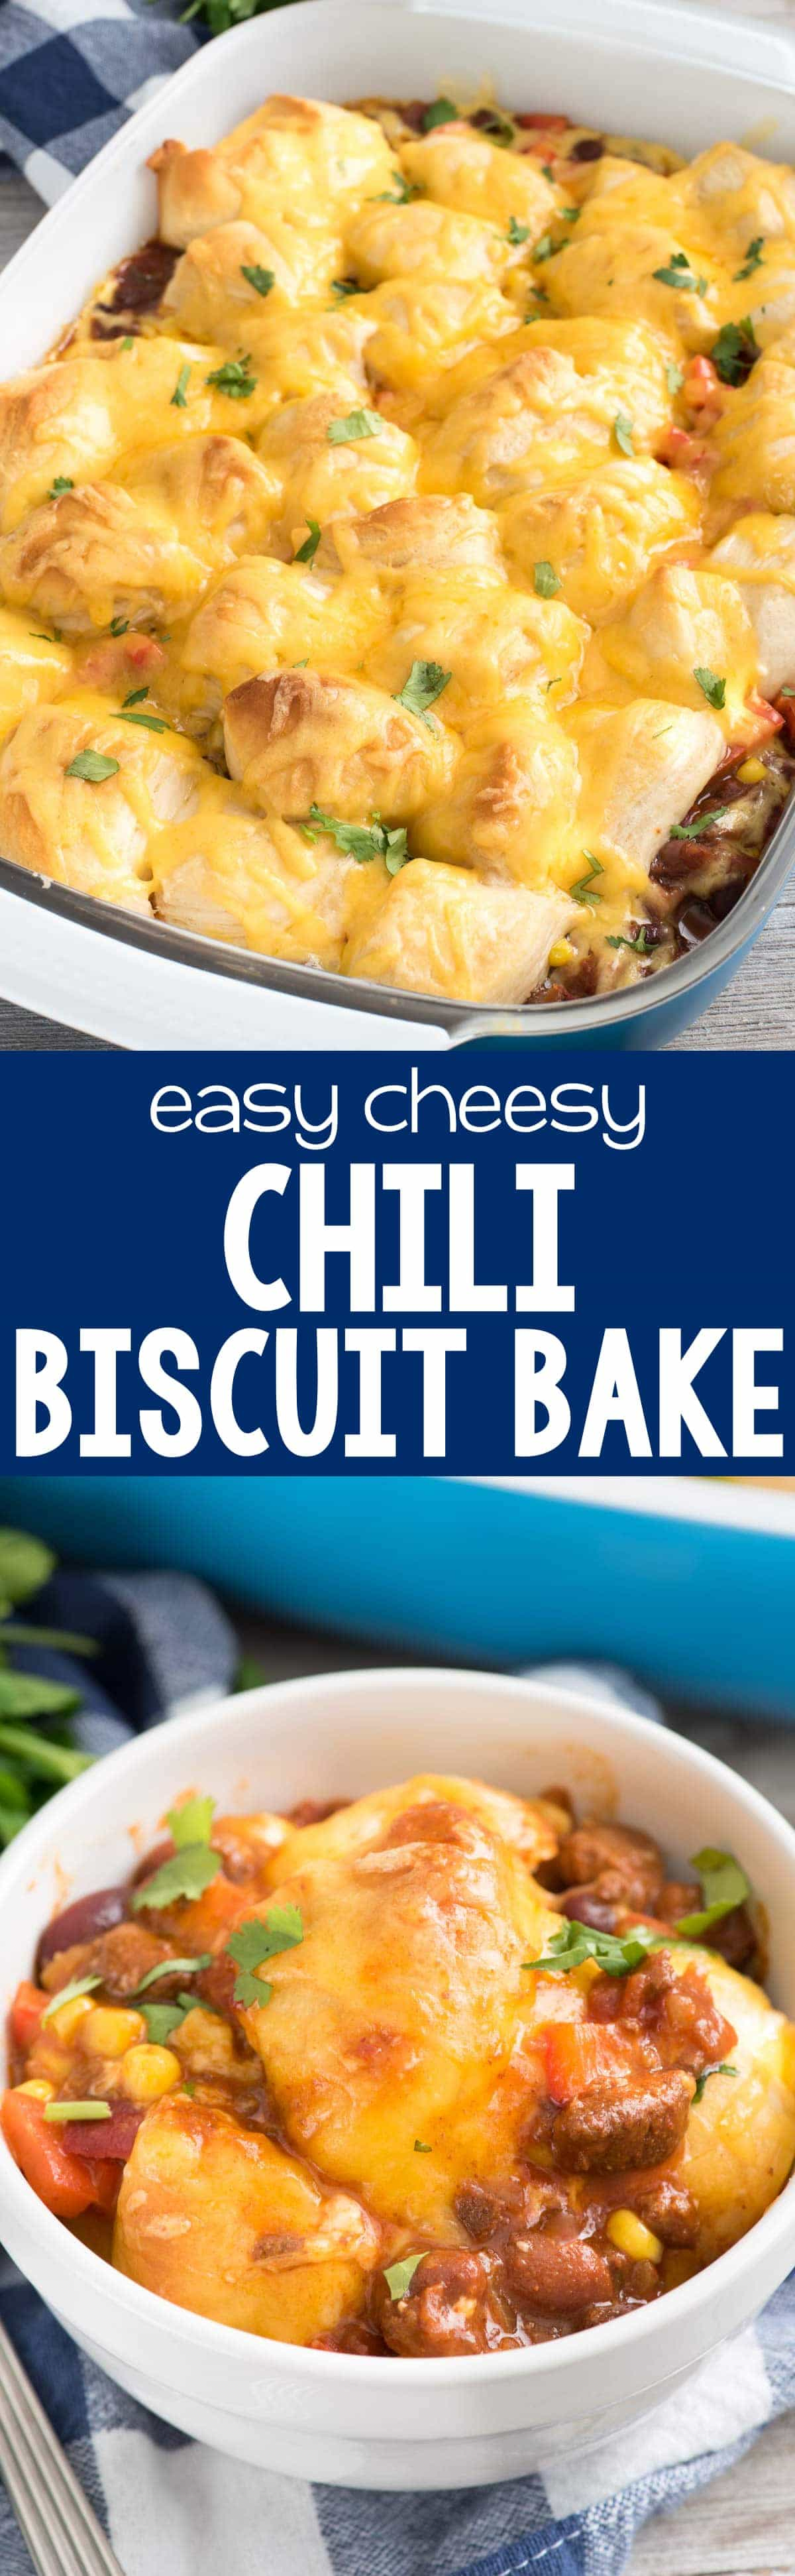 Easy Cheesy Chili Biscuit Bake - this easy weeknight dinner recipe has just 5 ingredients! Chili is topped with vegetables, biscuits, and cheese and bakes up for a delicious meal.